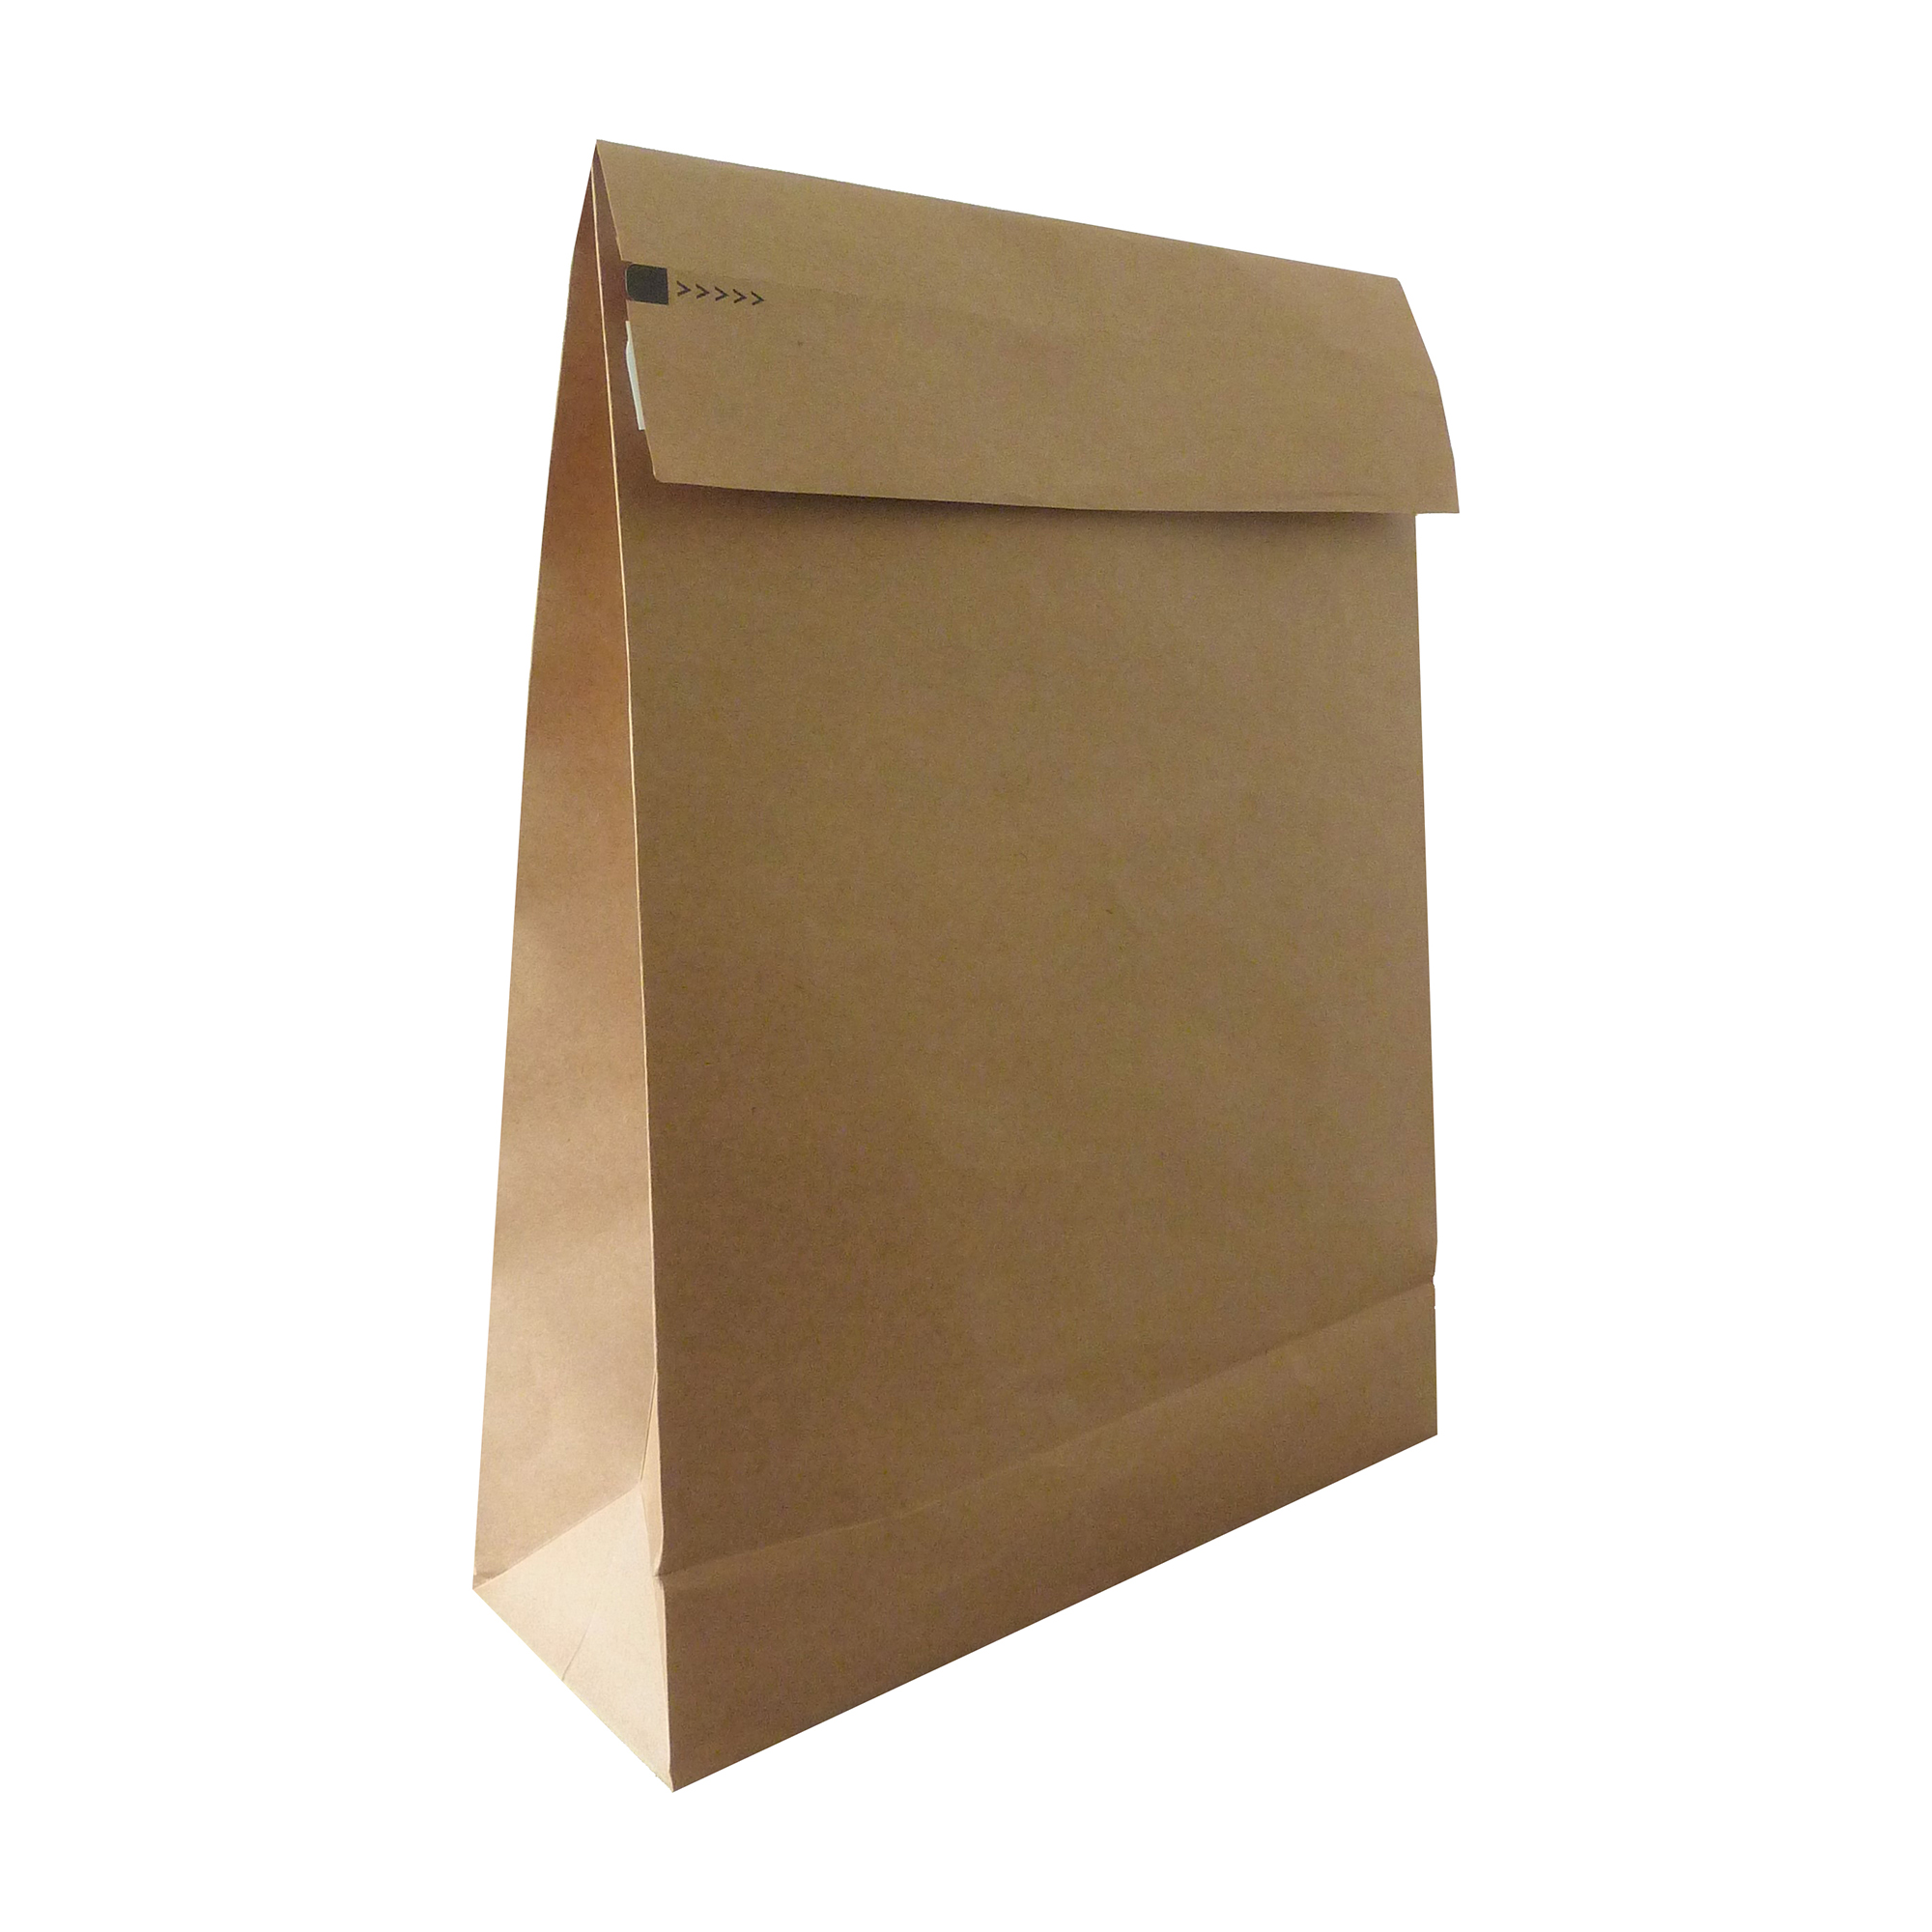 Standard envelopes Kraft Mlr Eco Expanding Block Btm & Side Gusset Dbl P&S 162x229x40mm +100 flapC5 ManRefRBL10527 Pack 50